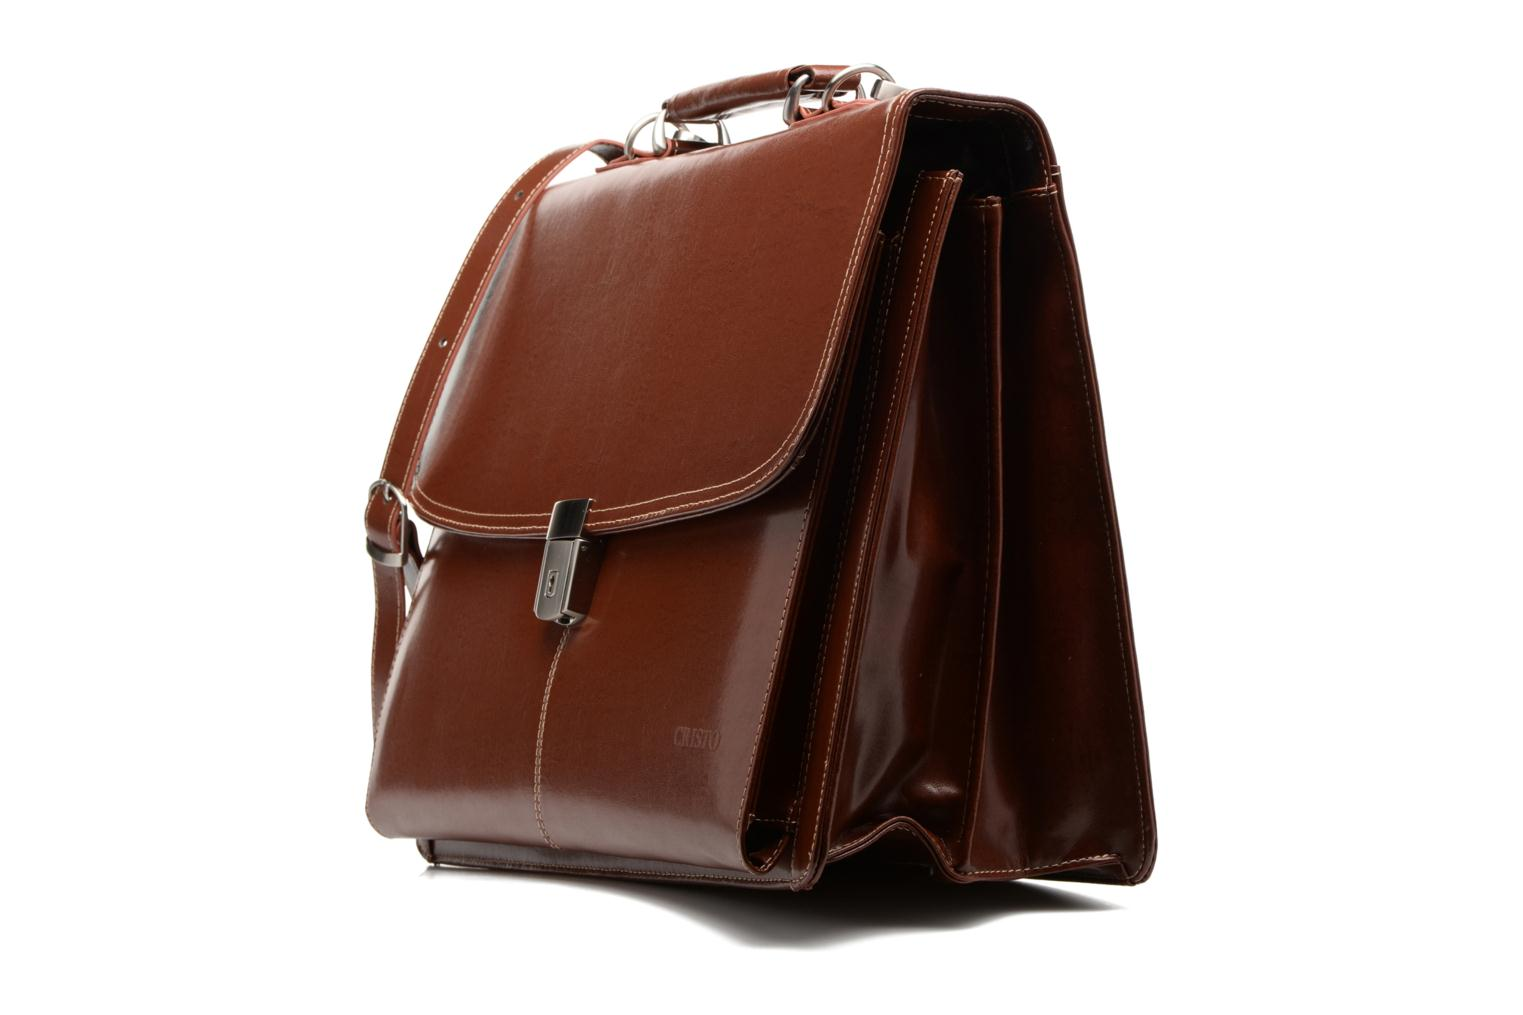 Cartable 2 Soufflets Cuir Metropole marron